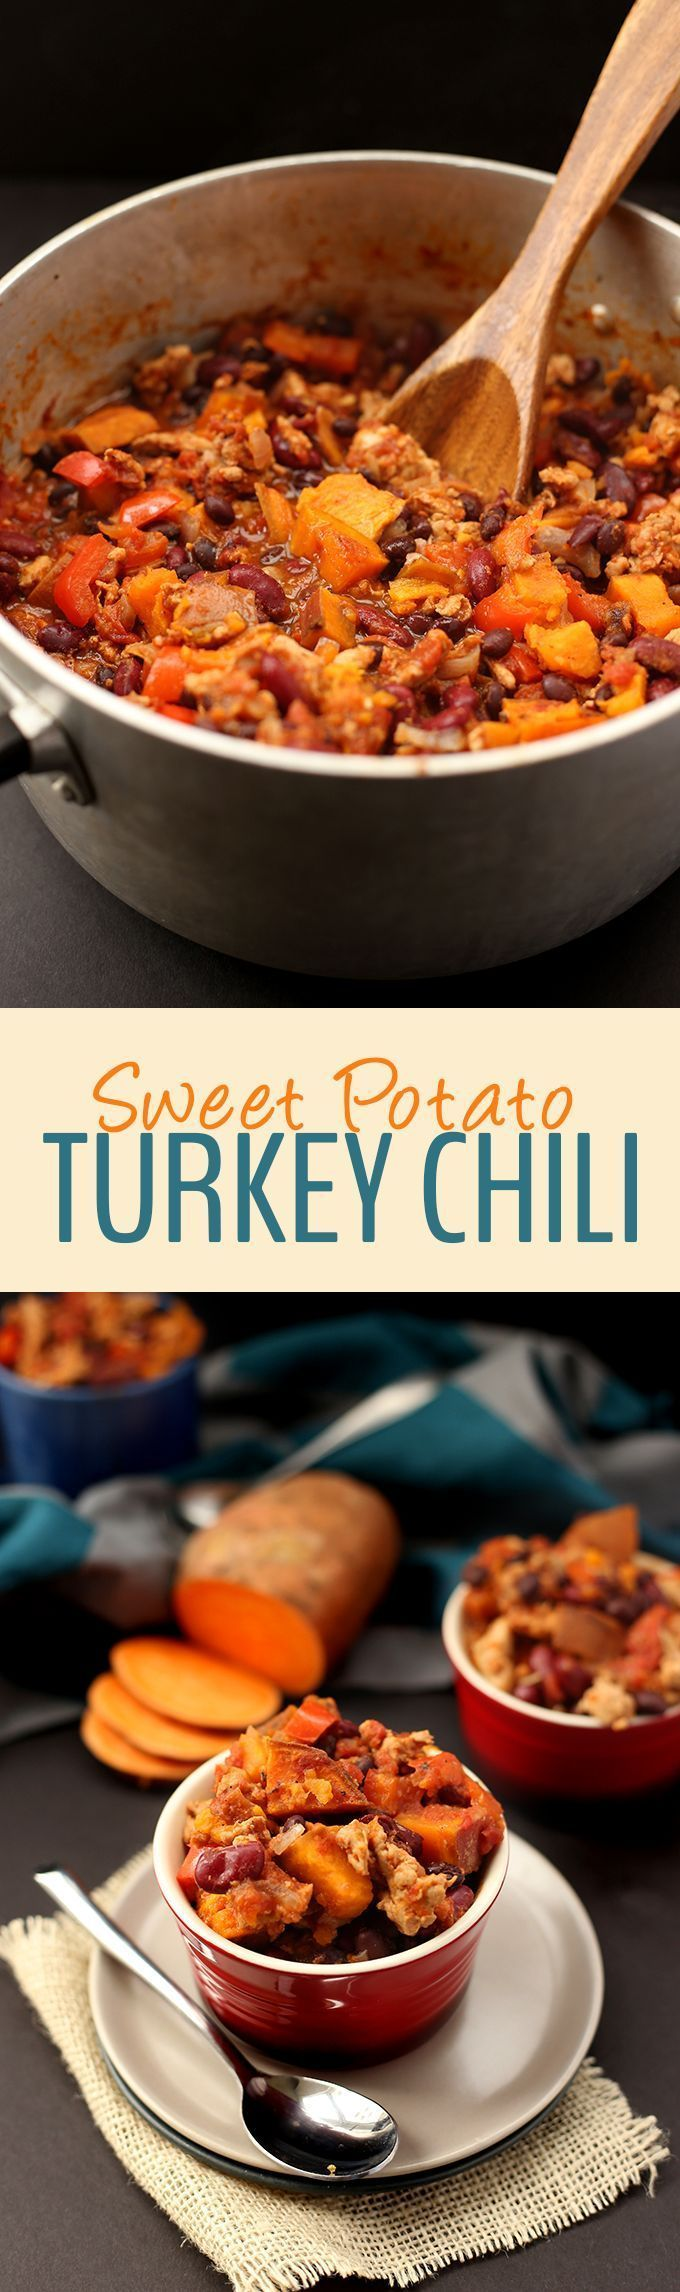 Lightened-up chili using ground turkey and sweet potato! This Sweet Potato Turkey Chili can be made in one-pot and will feed you all fall and winter long!